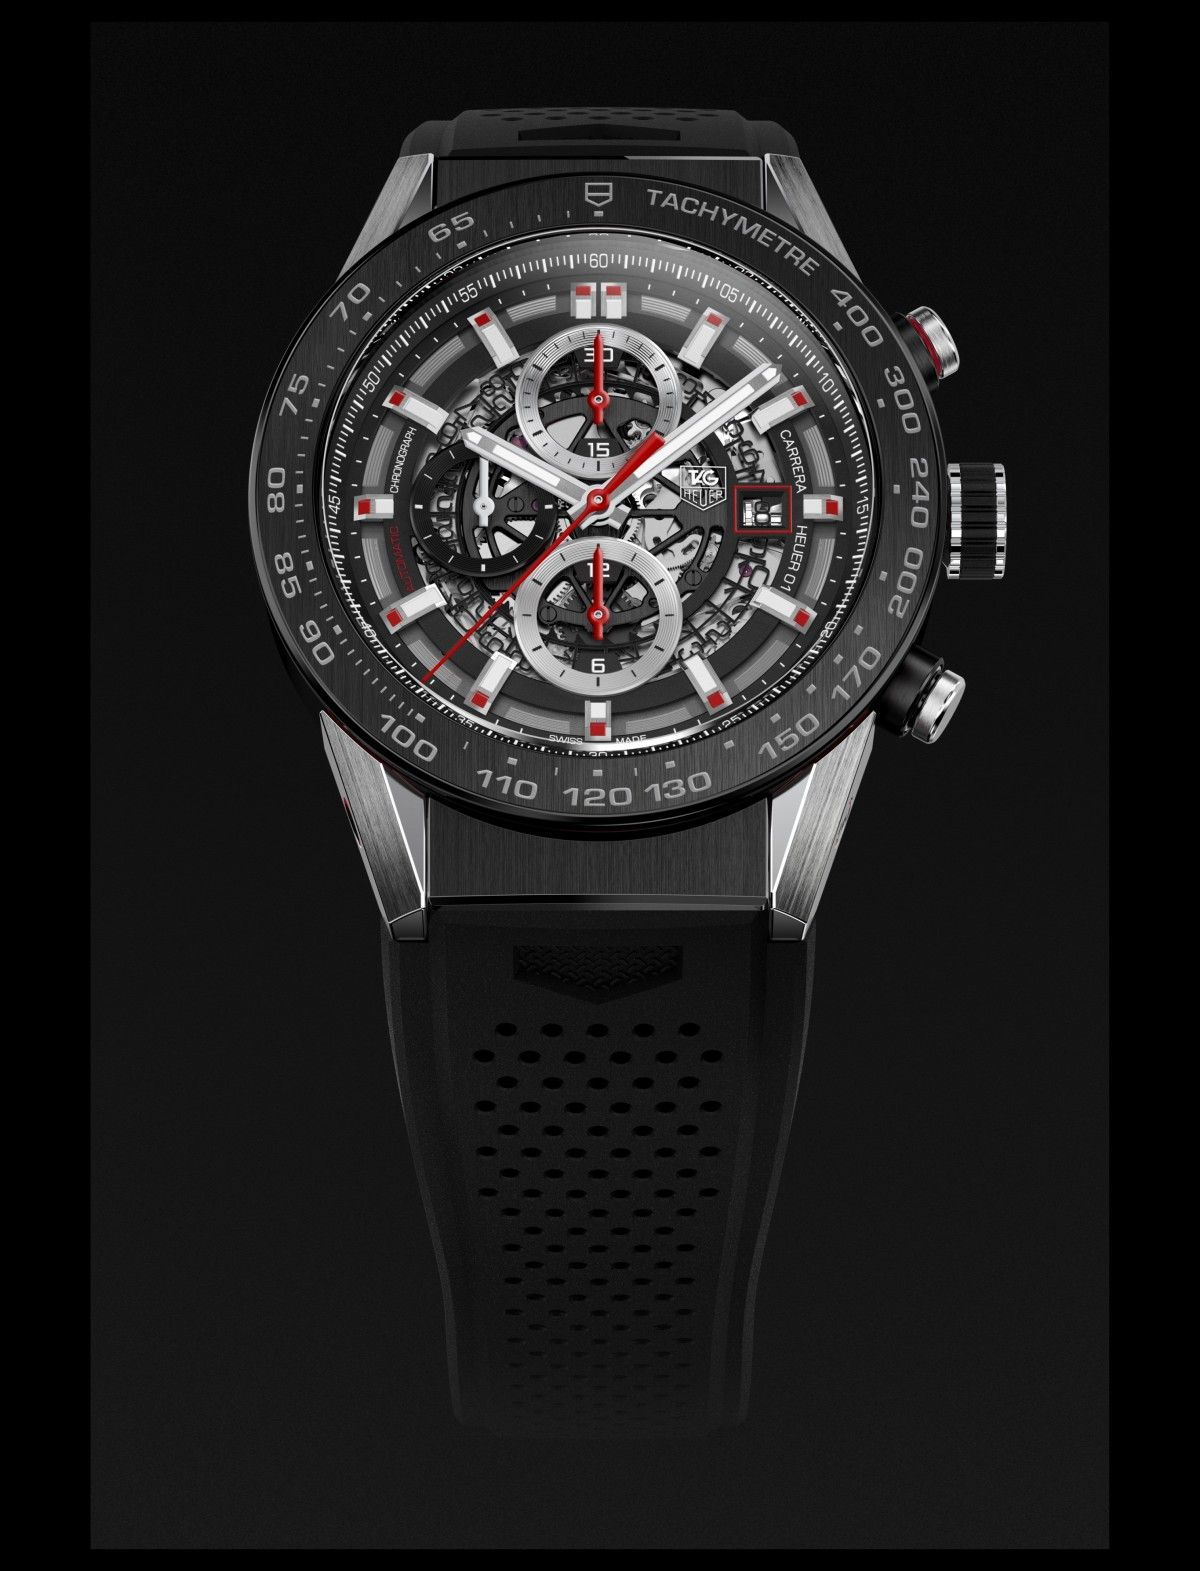 010d64c71b9 The TAG Heuer Carrera Heuer 01 was introduced at Baselworld 2015.